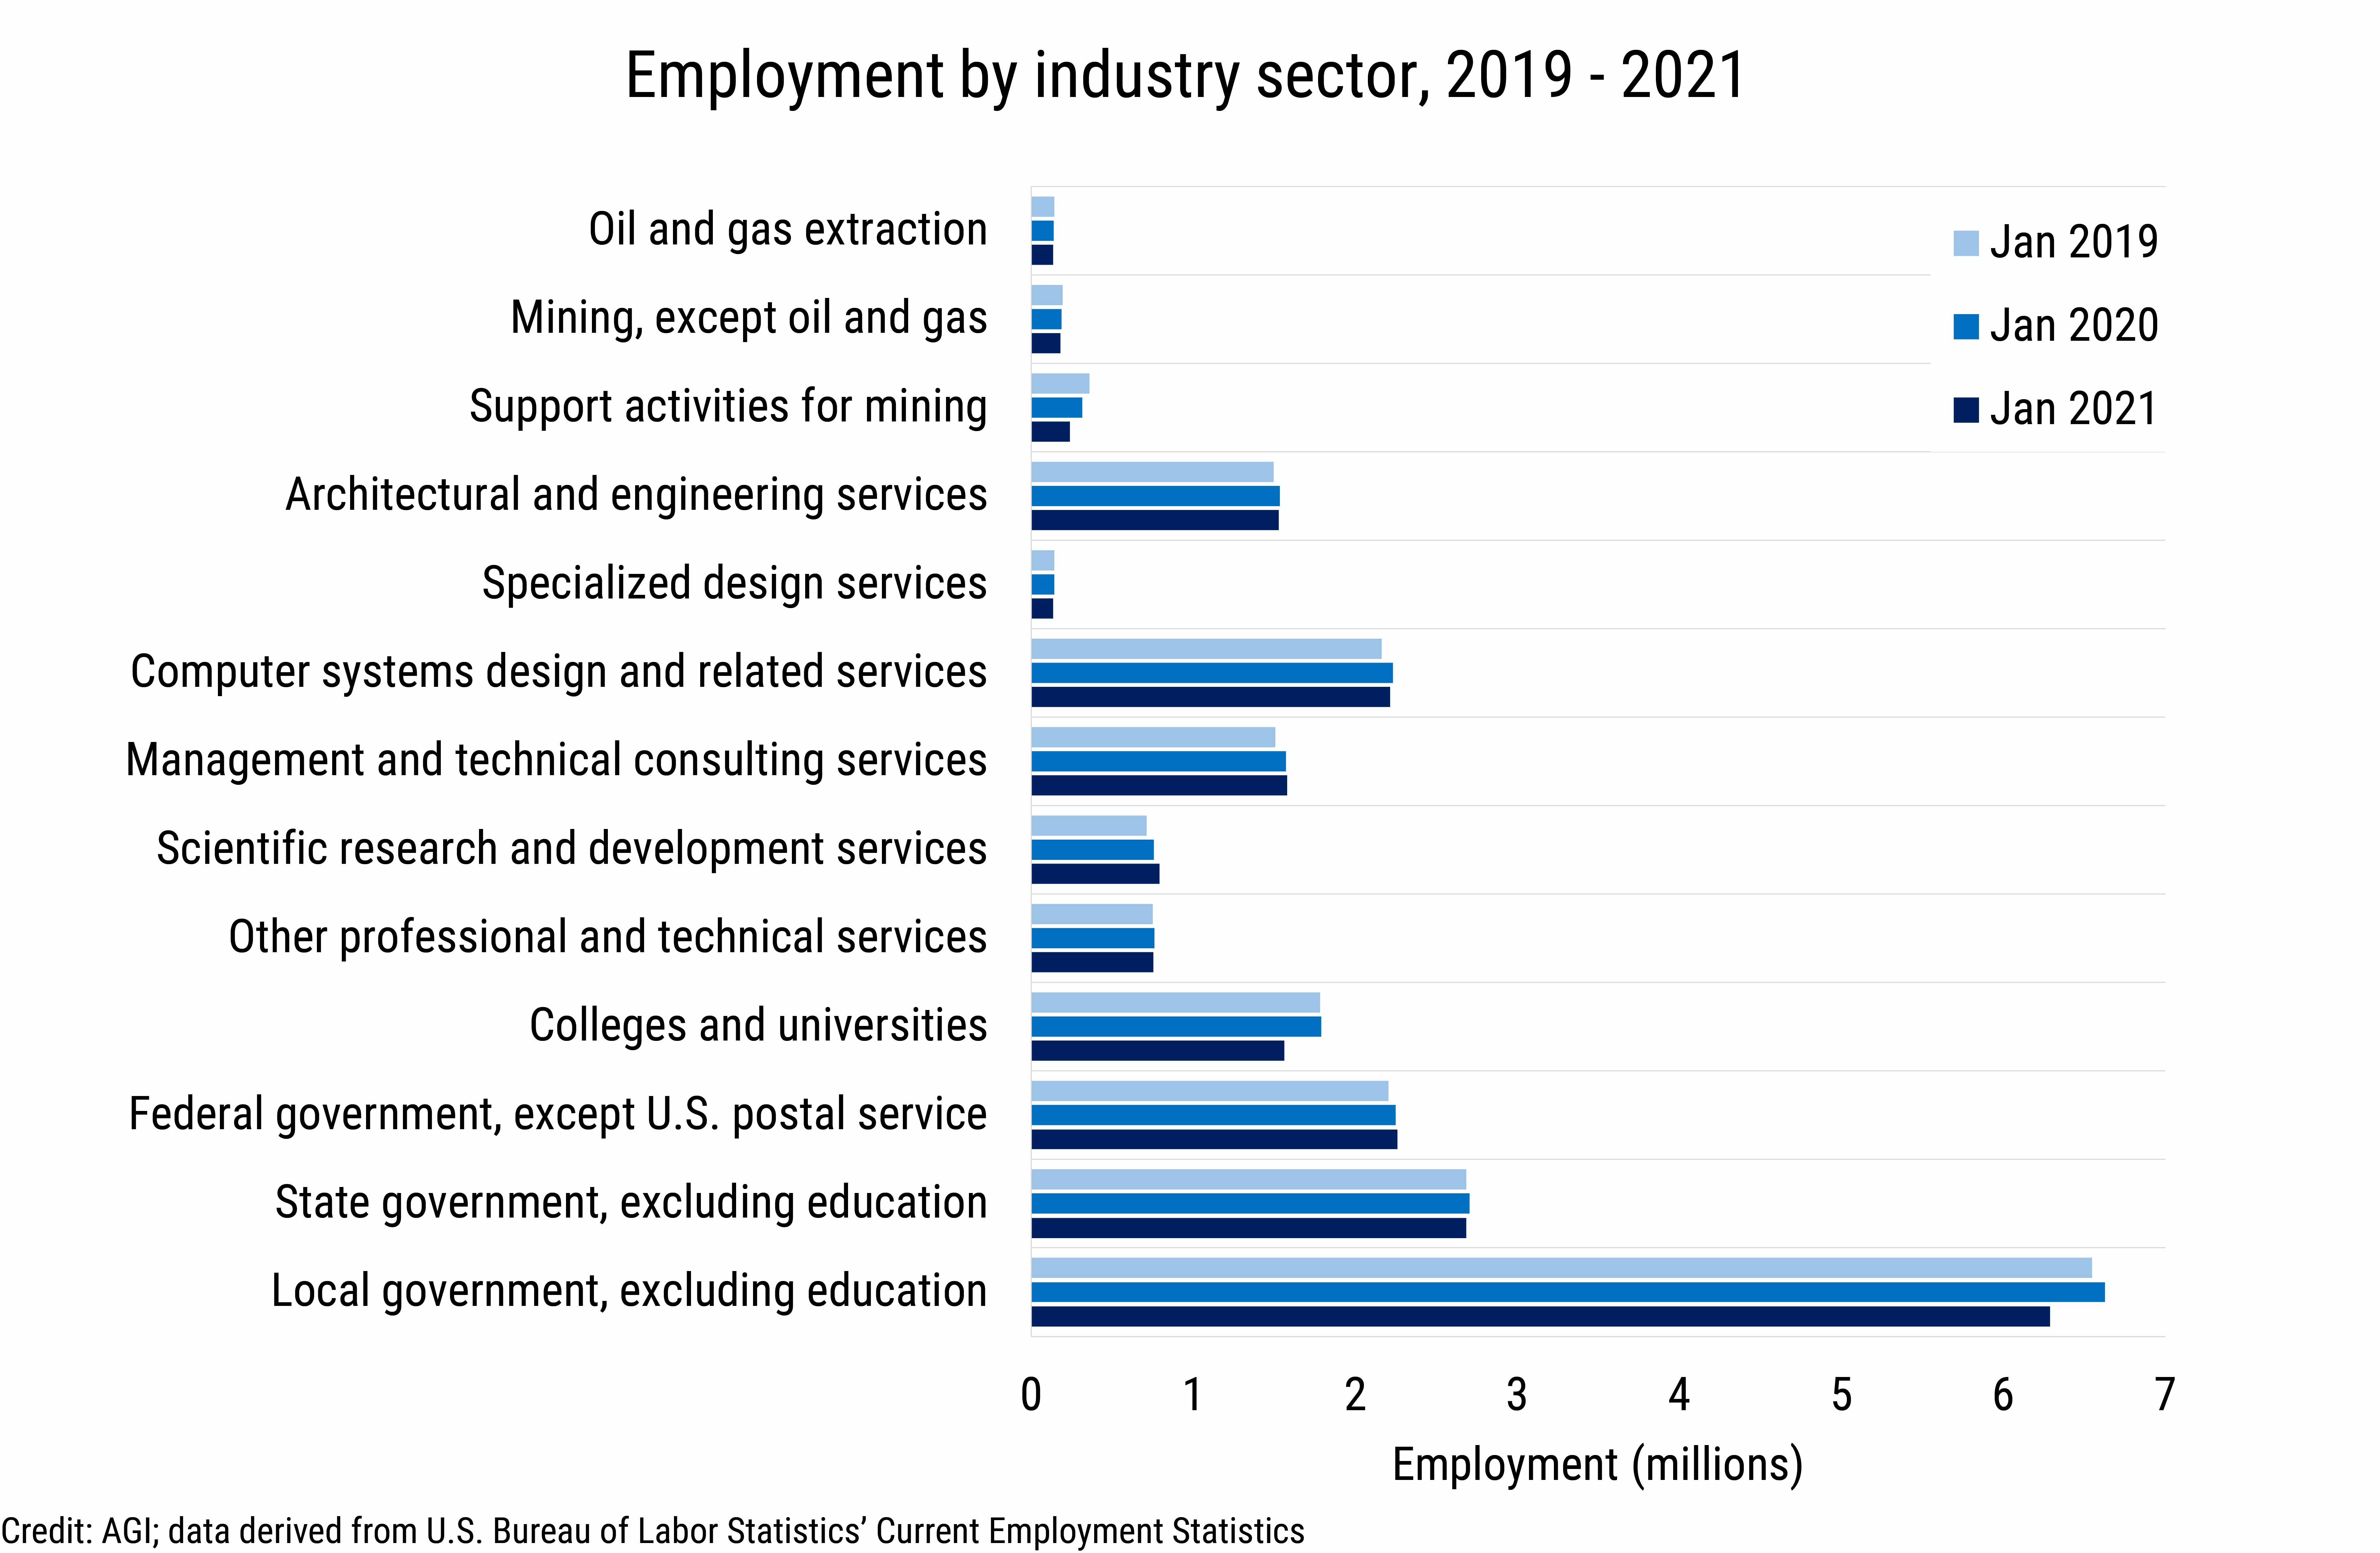 DB_2021-010 chart 03: Employment by industry sector, 2019 - 2021 (Credit: AGI, data derived from the U.S. Bureau of Labor Statistics, Current Employment Statistics)